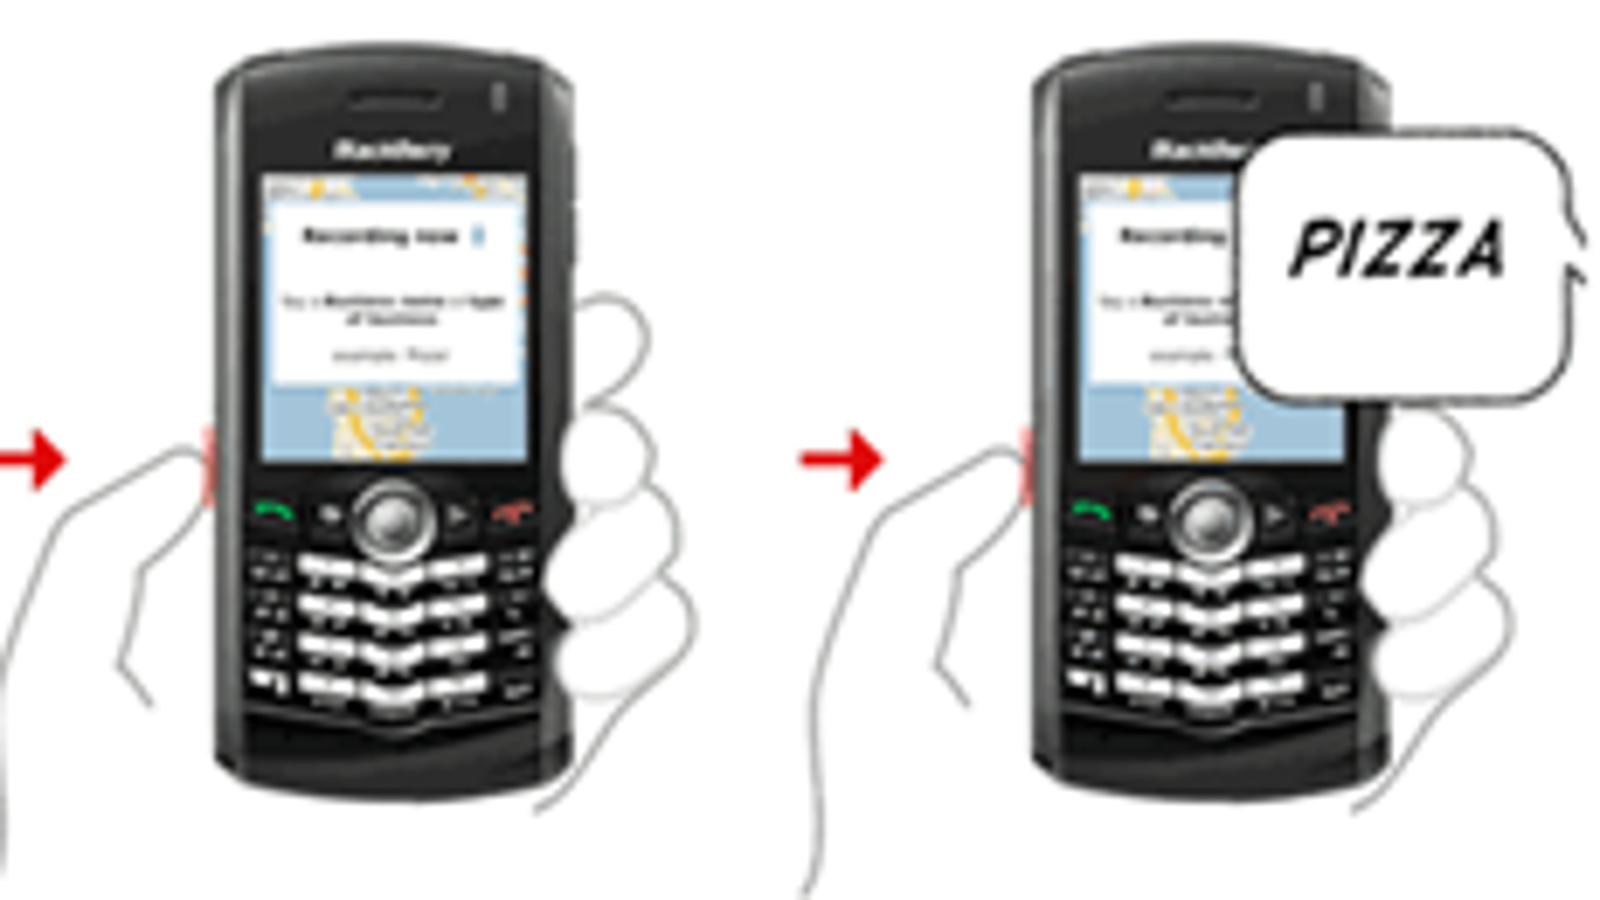 BlackBerry Pearl Gets Google Maps with Voice Search